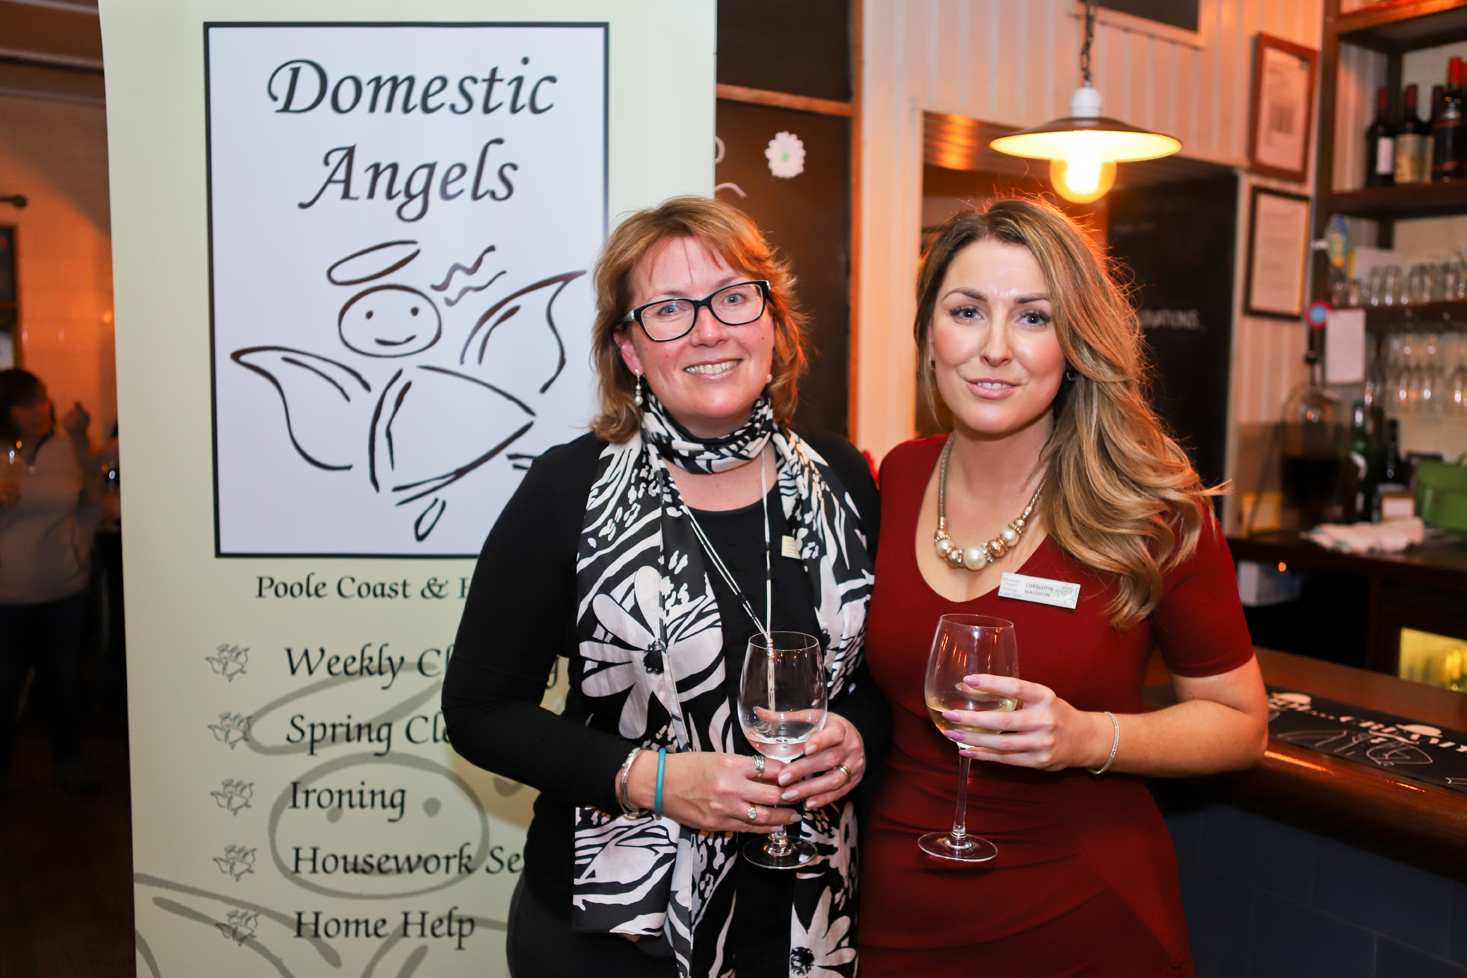 Domestic Angels launch Poole Coast & Harbour branch